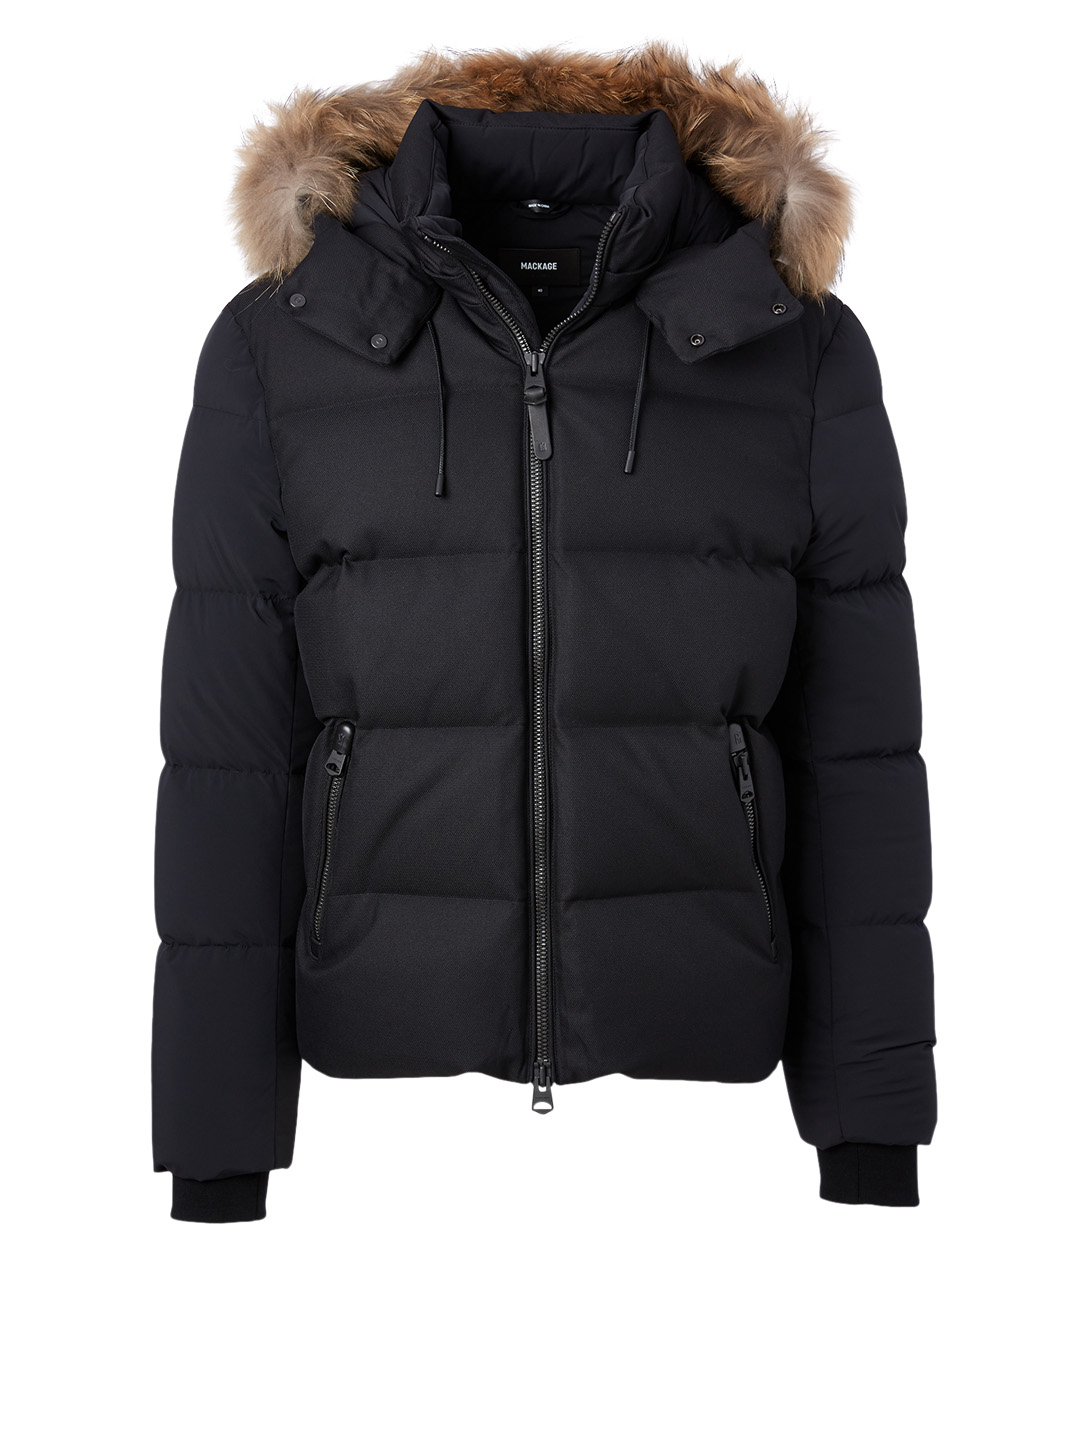 MACKAGE Randi Down Jacket With Fur Hood Men's Black